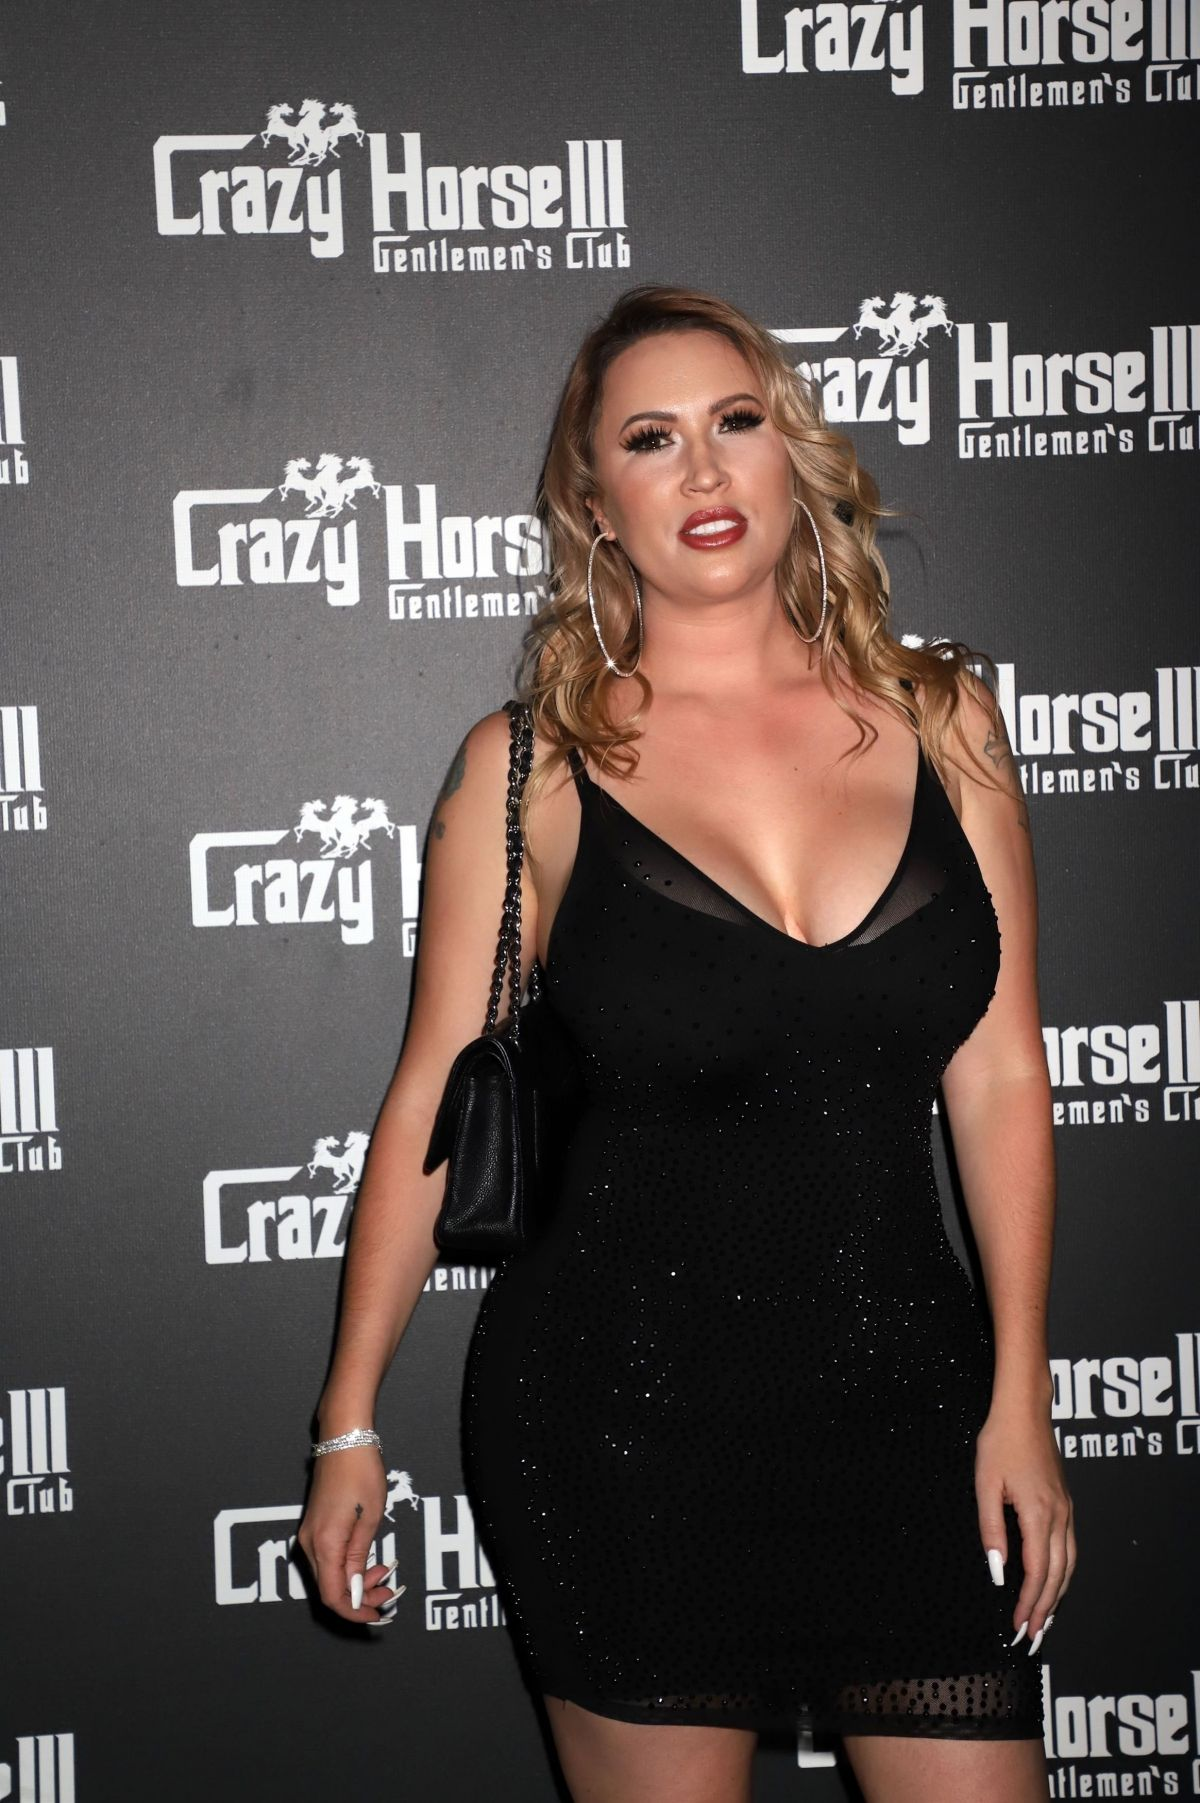 melissa meeks at her divorce party at crazy horse 3